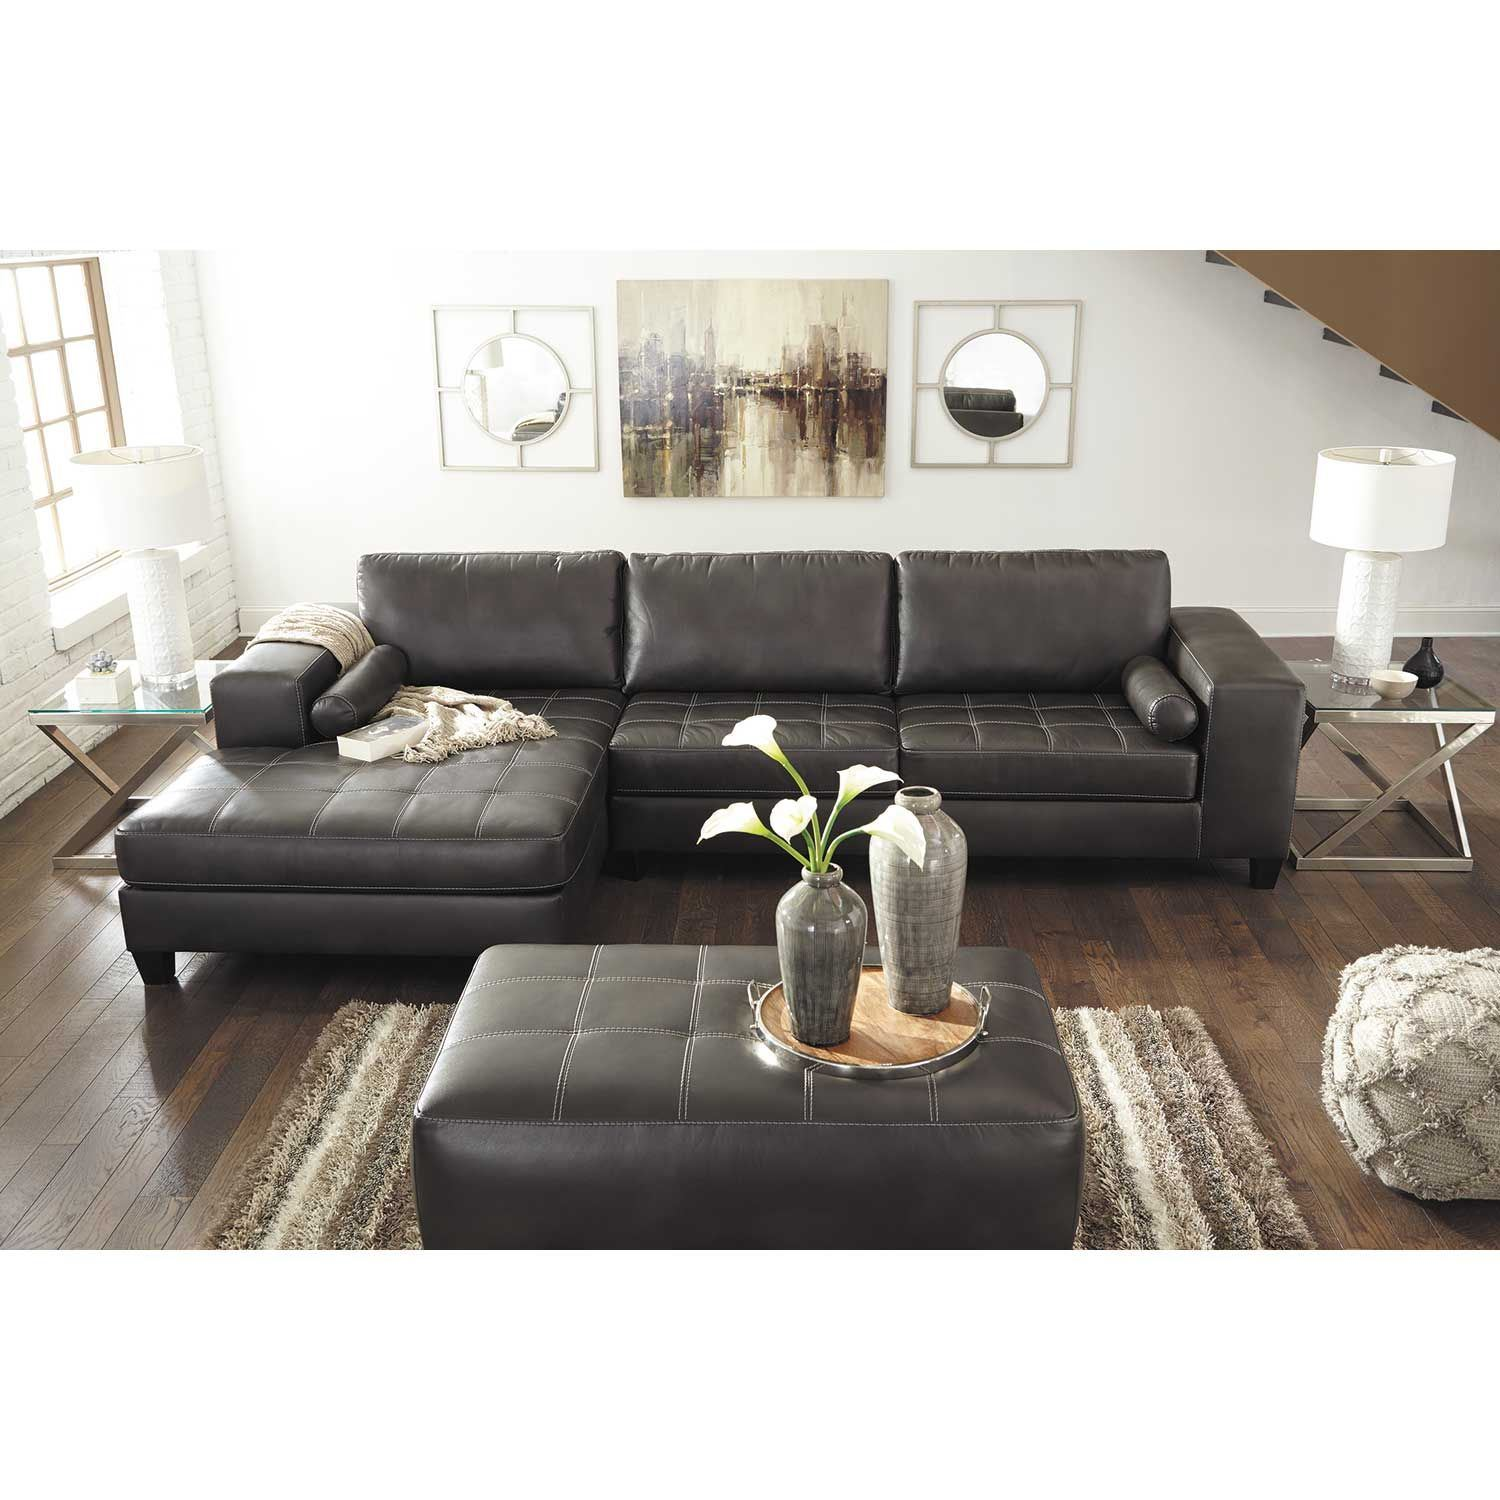 Ashley Furniture Sectionals: Nokomis 2 Piece Sectional With RAF Chaise